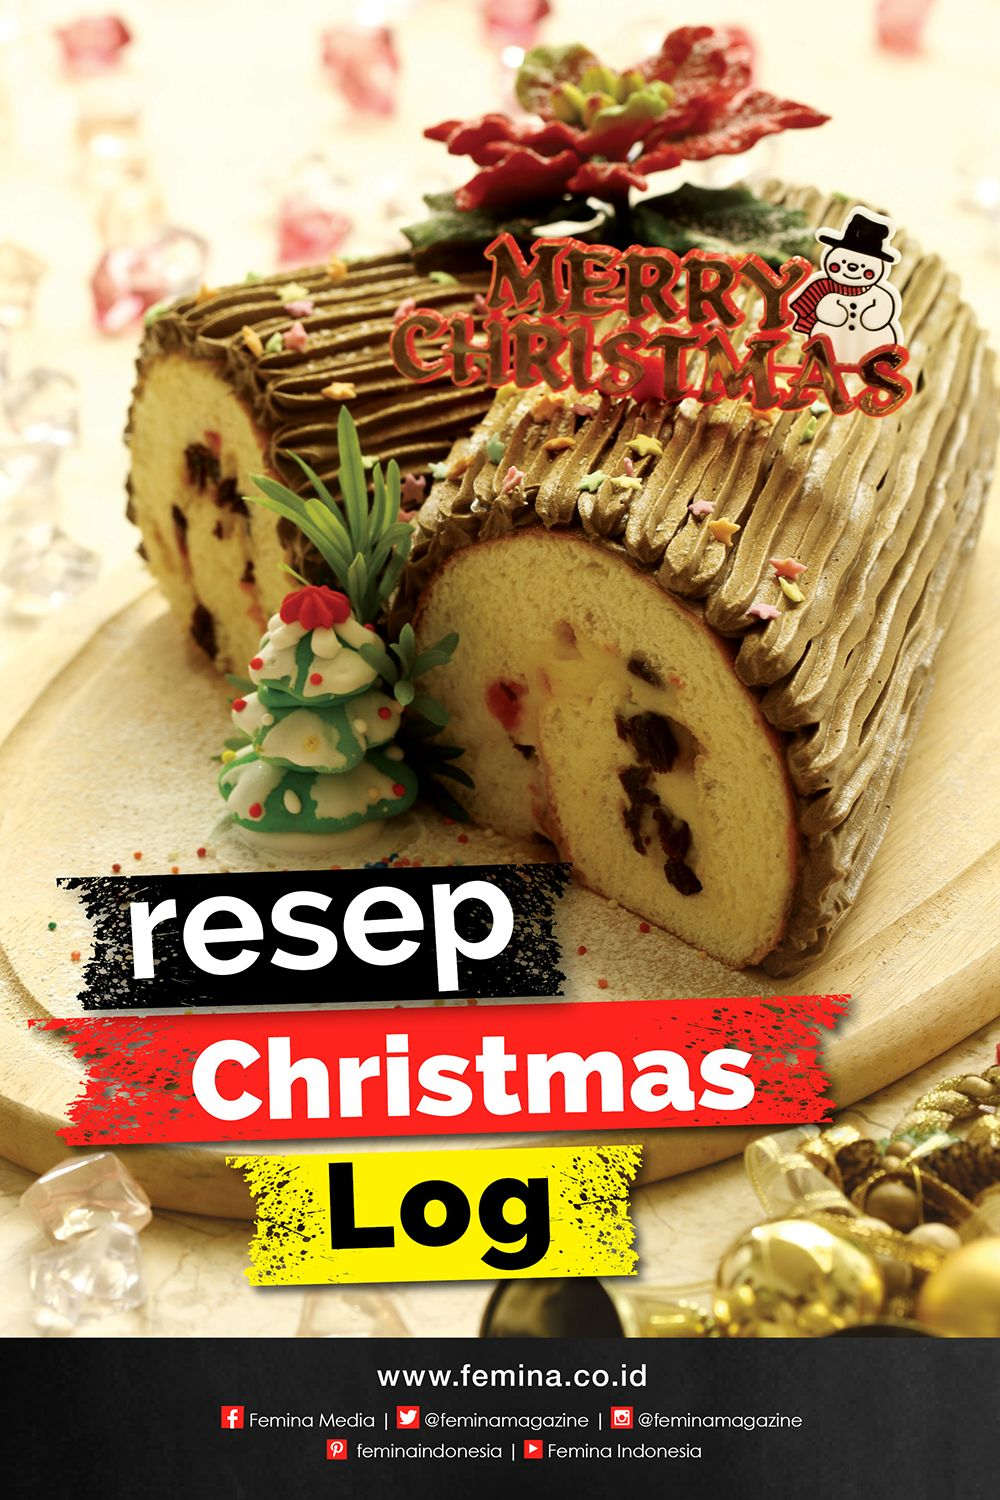 Resep Christmas Log Natal Resep